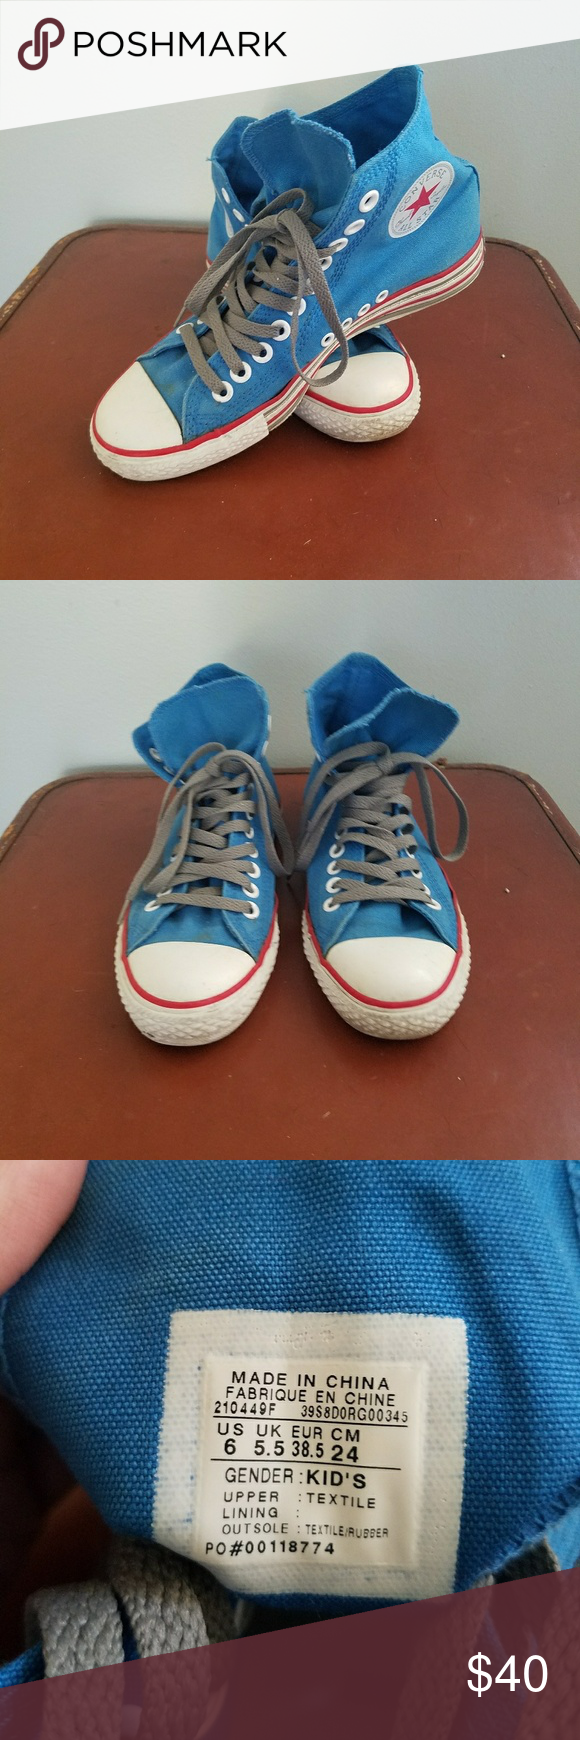 fb0edfb52dd6 Converse All Star High Tops Chuck Taylor Americana colors reflect a classic  appeal in these size 6 Kids (8 Women s